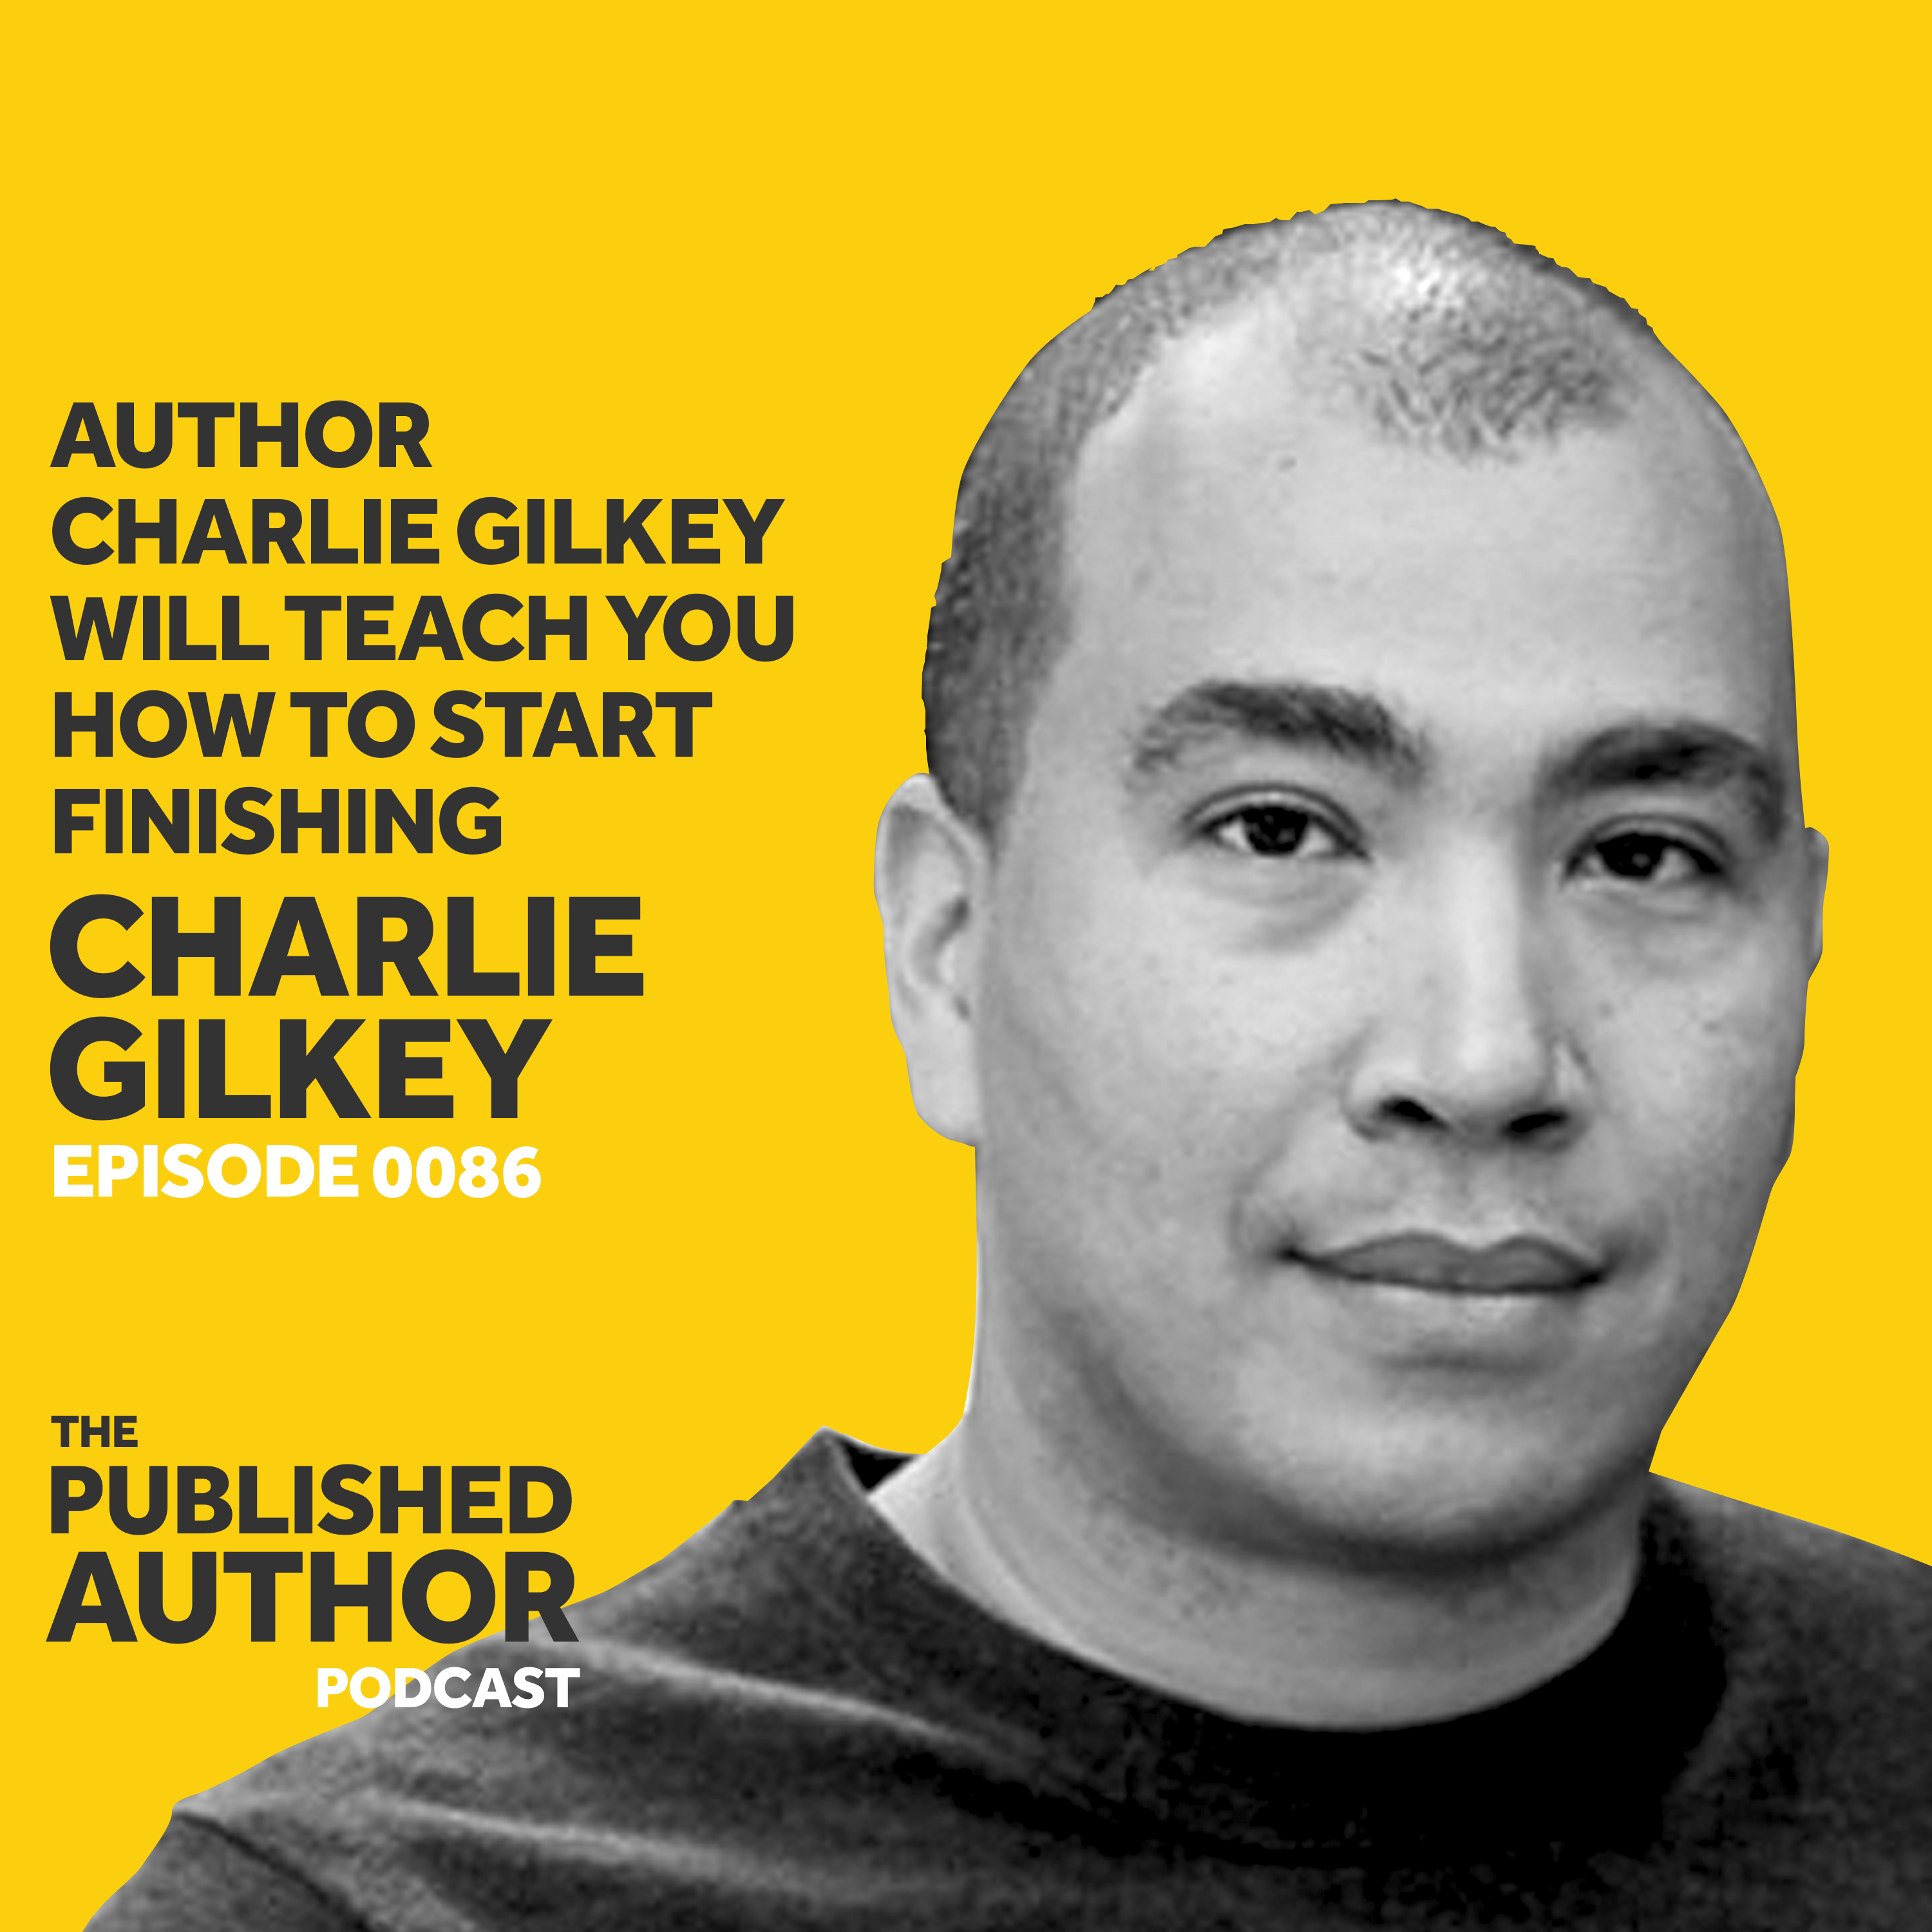 Author Charlie Gilkey Will Teach You How To Start Finishing